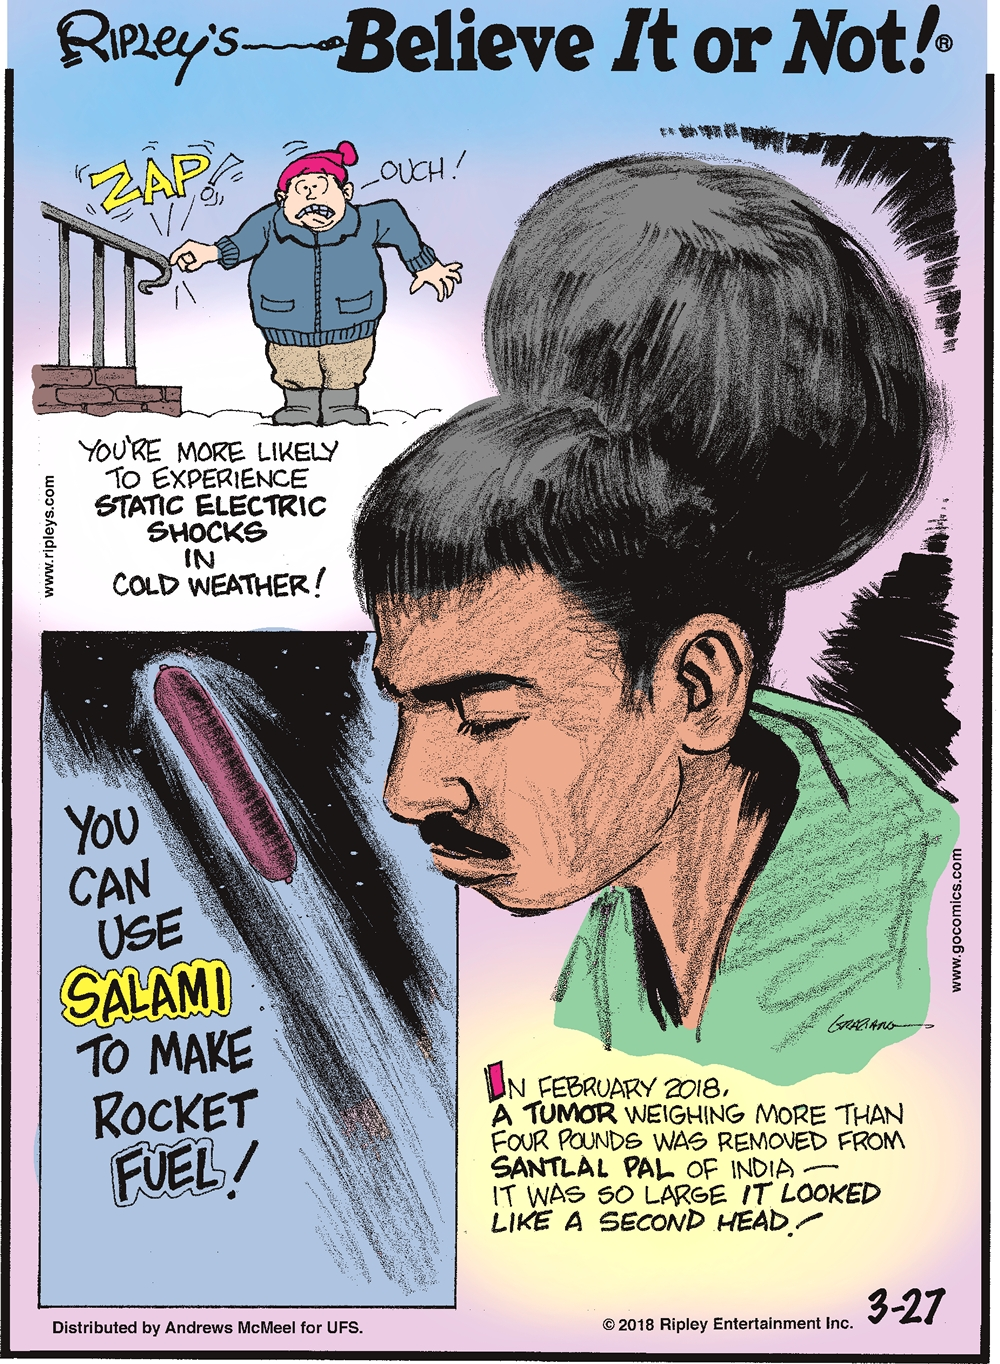 You're more likely to experience static electric shocks in cold weather!-------------------- You can use salami to make rocket fuel!-------------------- In February 2018, a tumor weighing more than four pounds was removed from Santlal Pal of India - it was so large it looked like a second head!